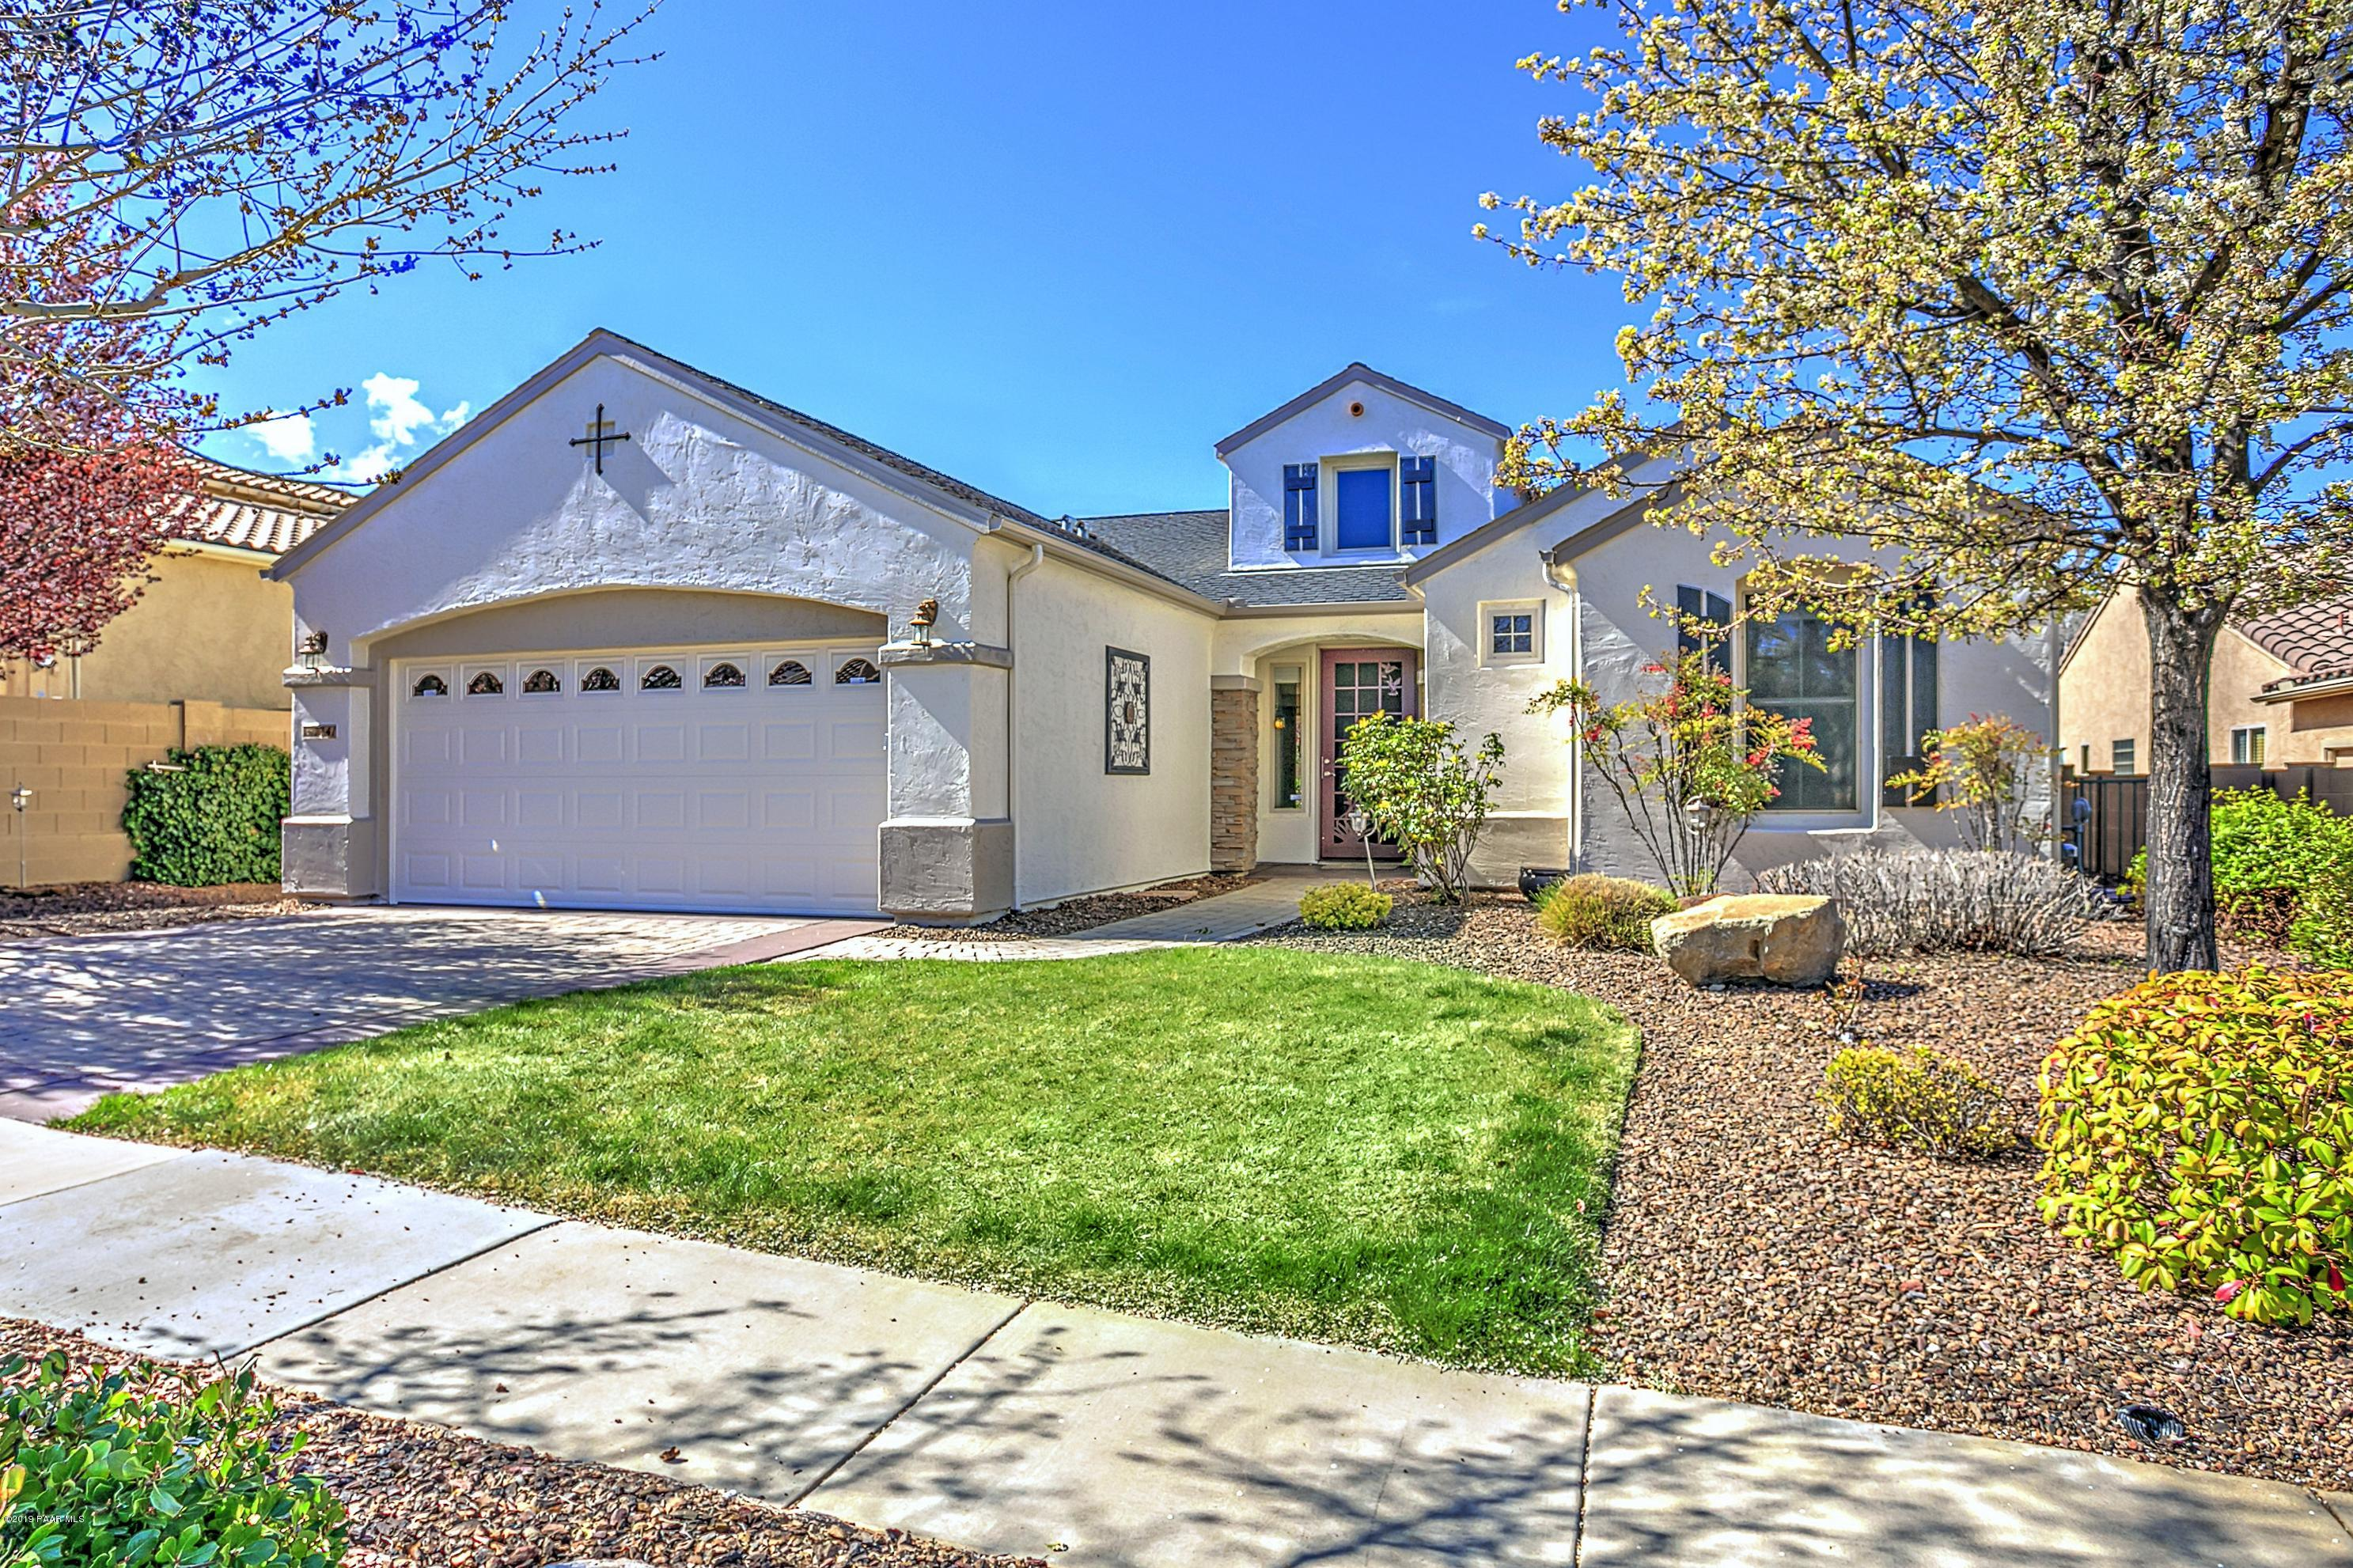 Photo of 7341 Goodnight, Prescott Valley, AZ 86314